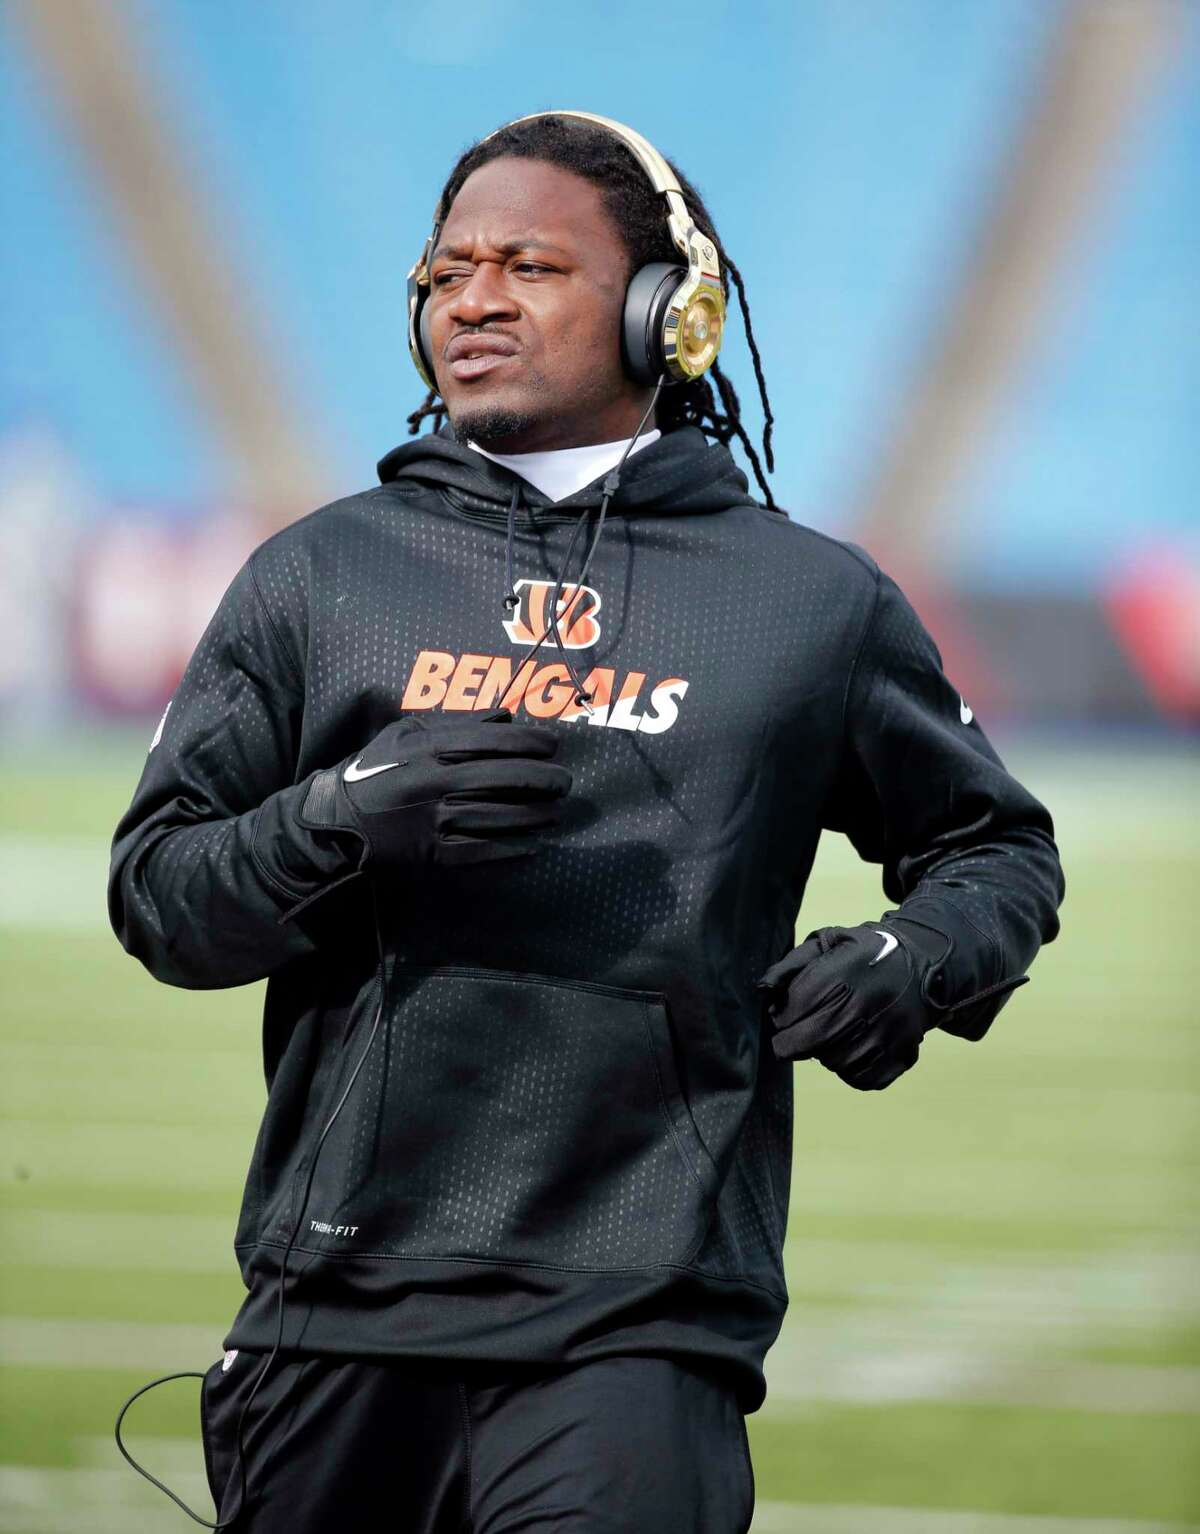 Cincinnati Bengals cornerback Adam Jones.